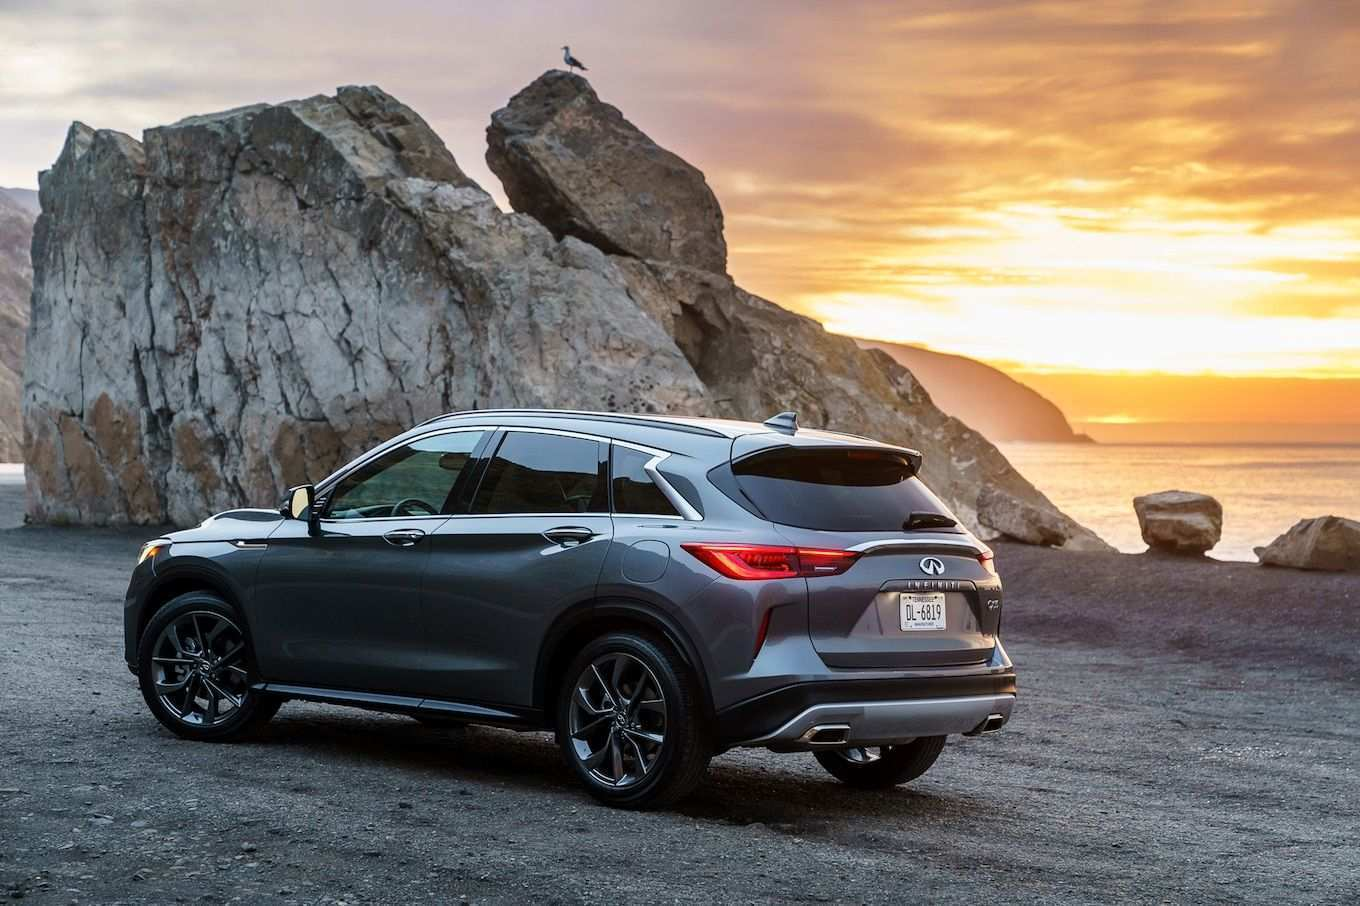 22 New 2019 Infiniti Qx50 Engine Specs Release